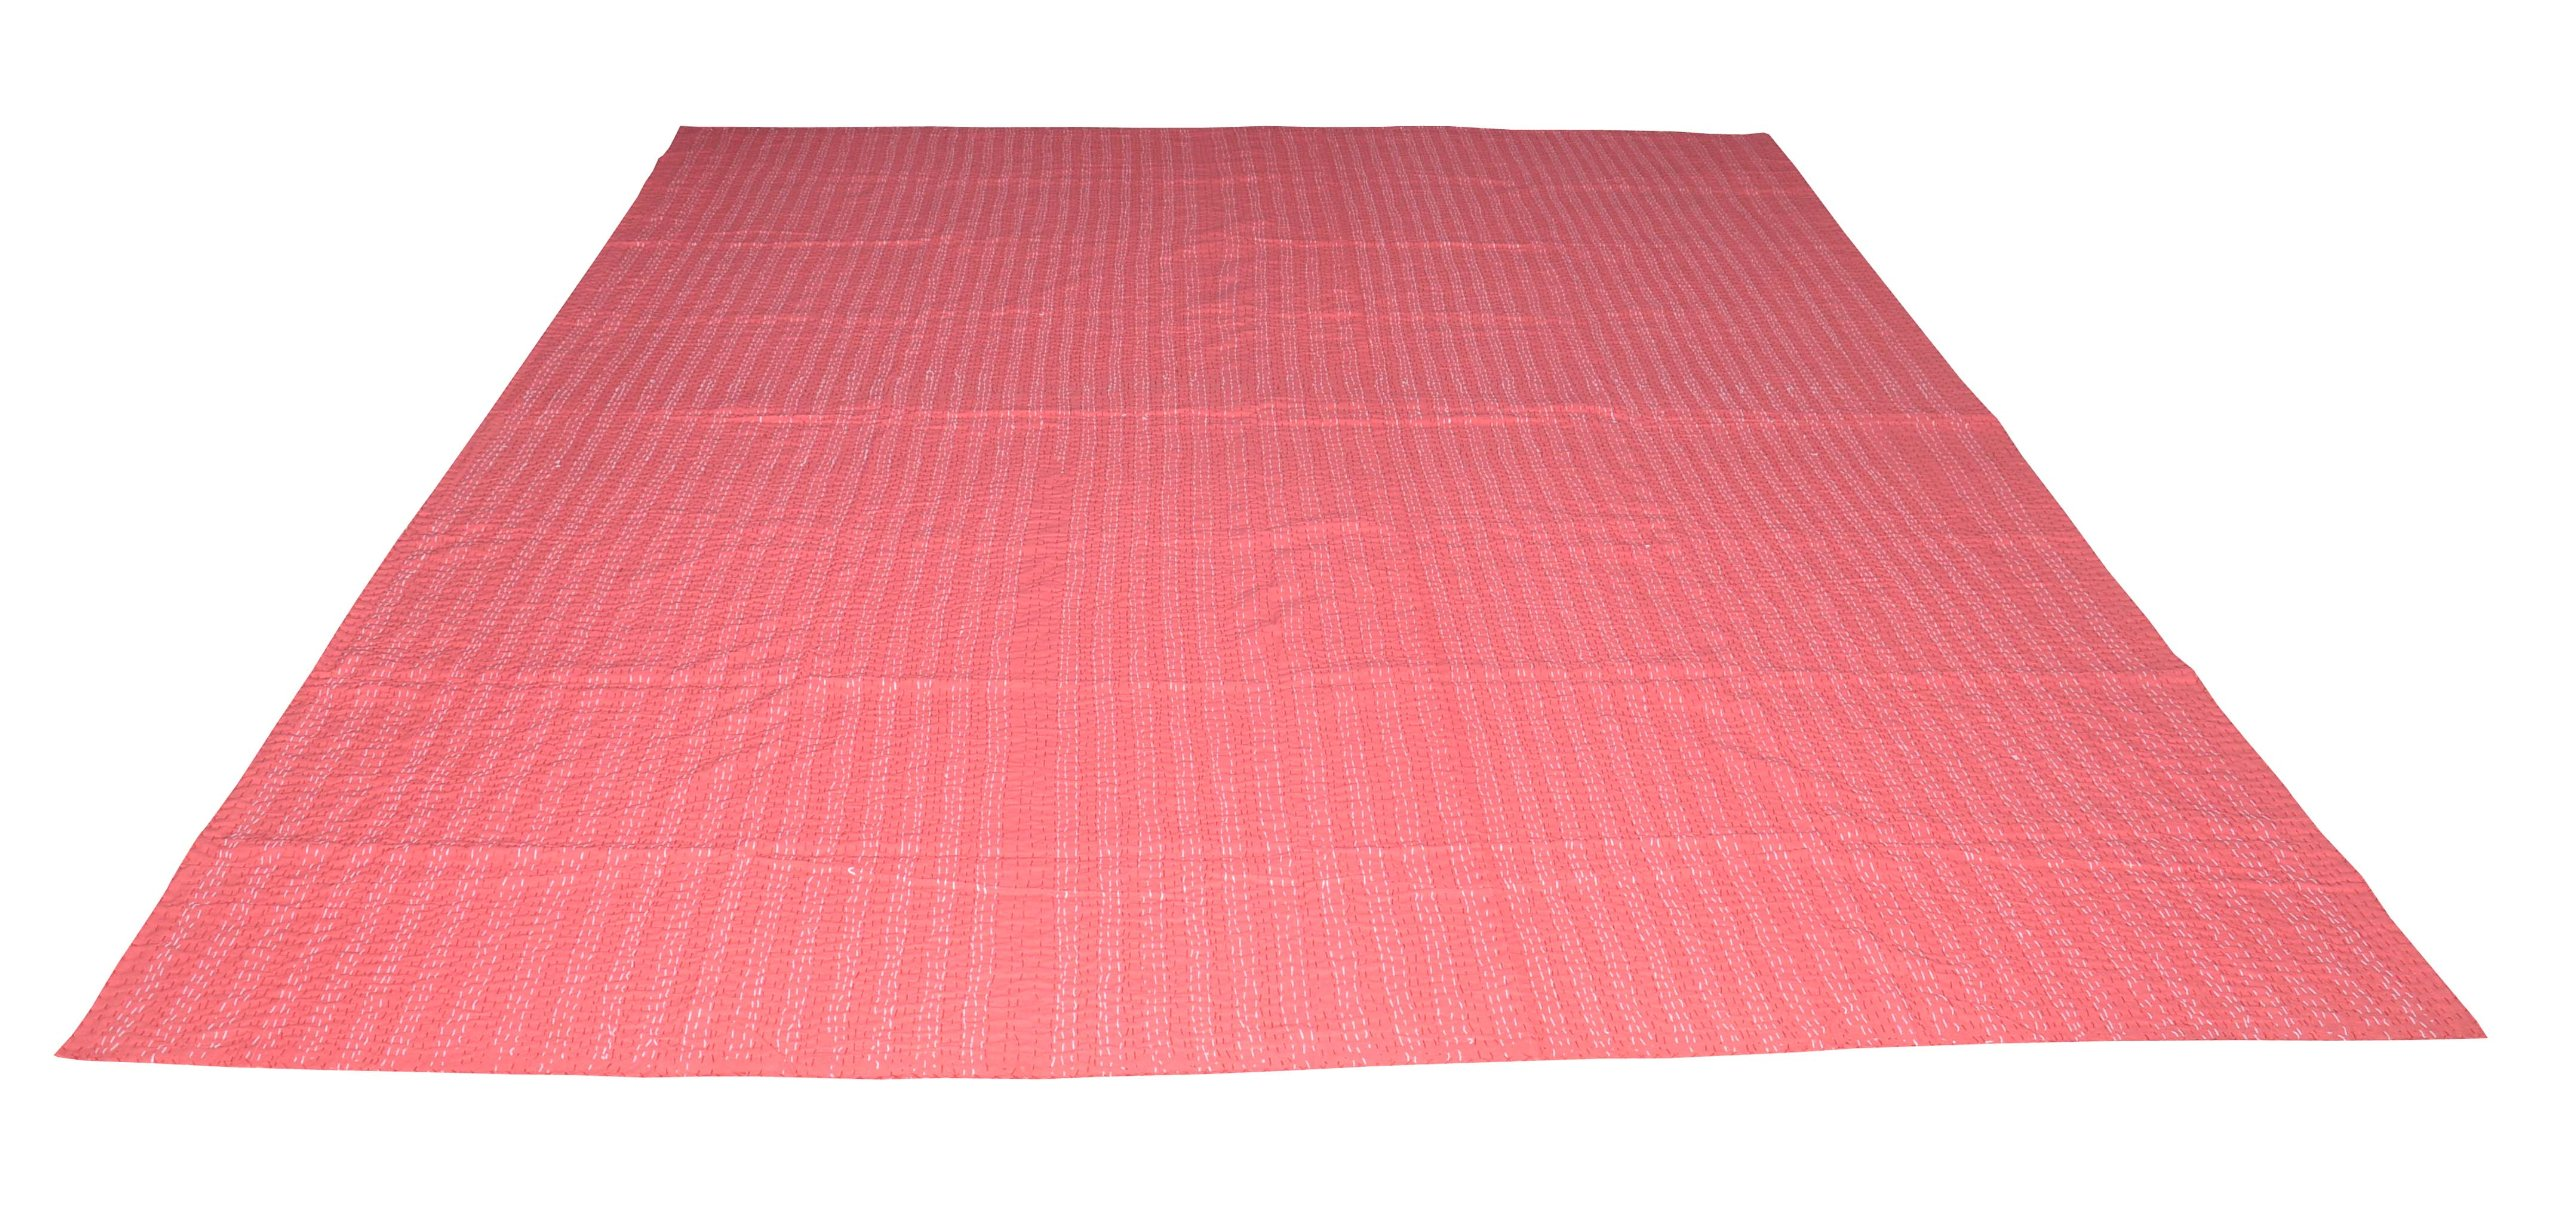 100% Cotton Quilt Floral Pattern Home Décor Kantha Multi Color Reversible Patchwork Bedspread, 90 X 108 Inches by Rajasthali (Image #5)